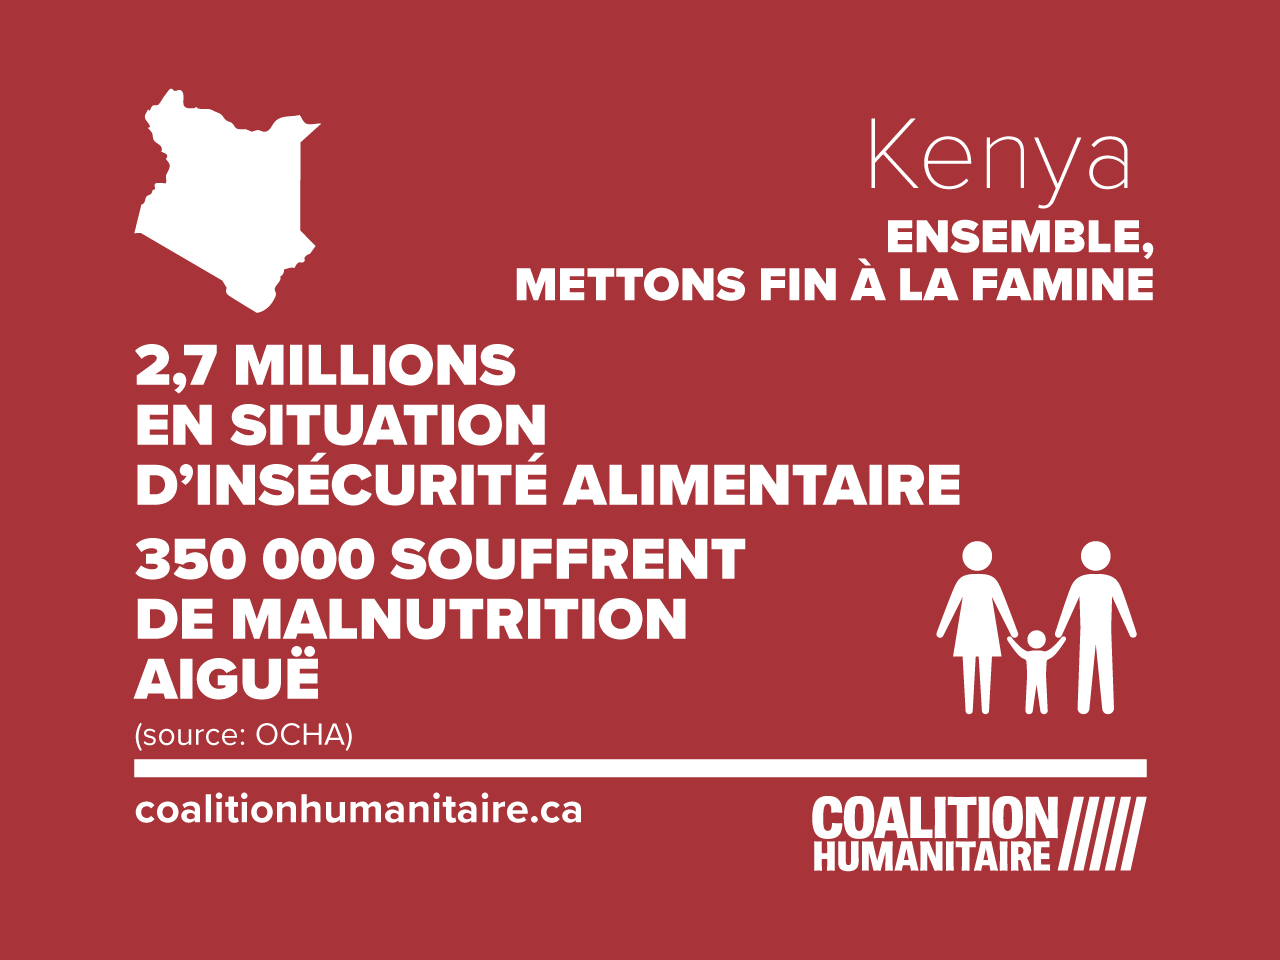 Crise alimentaire au Kenya infographic